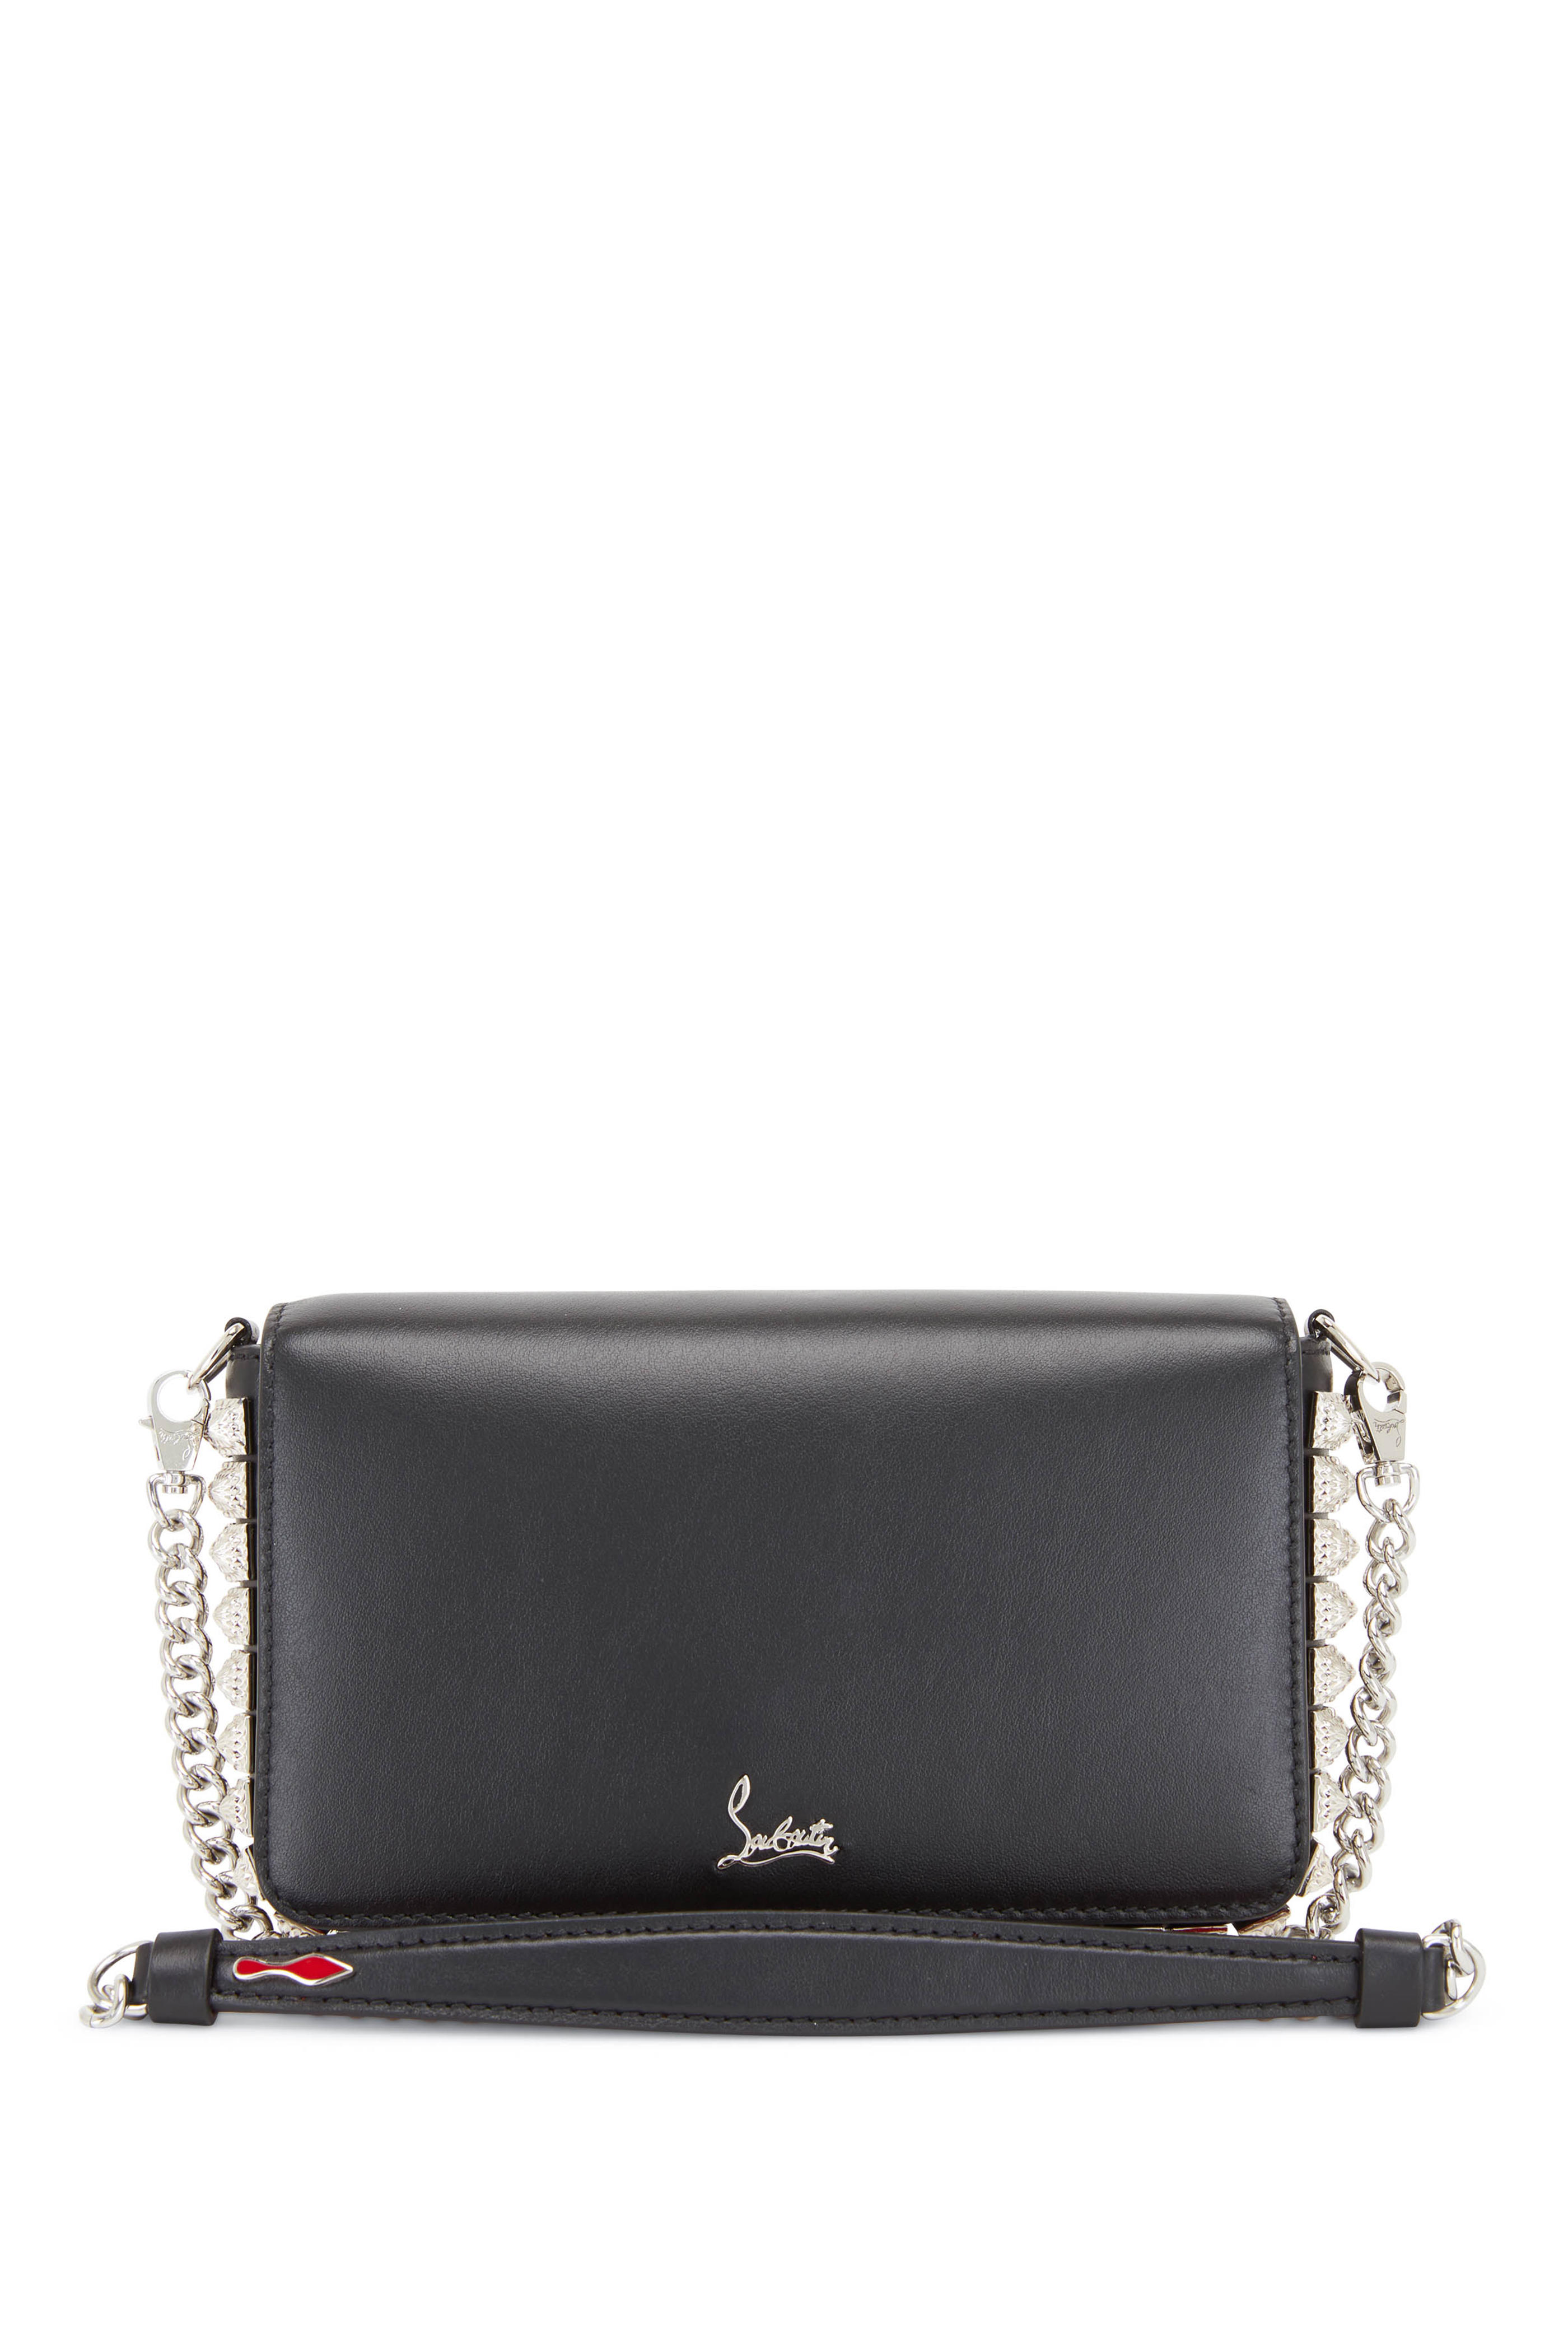 73a57e6b525 Christian Louboutin - Zoompouch Black Leather & Silver Spikes ...